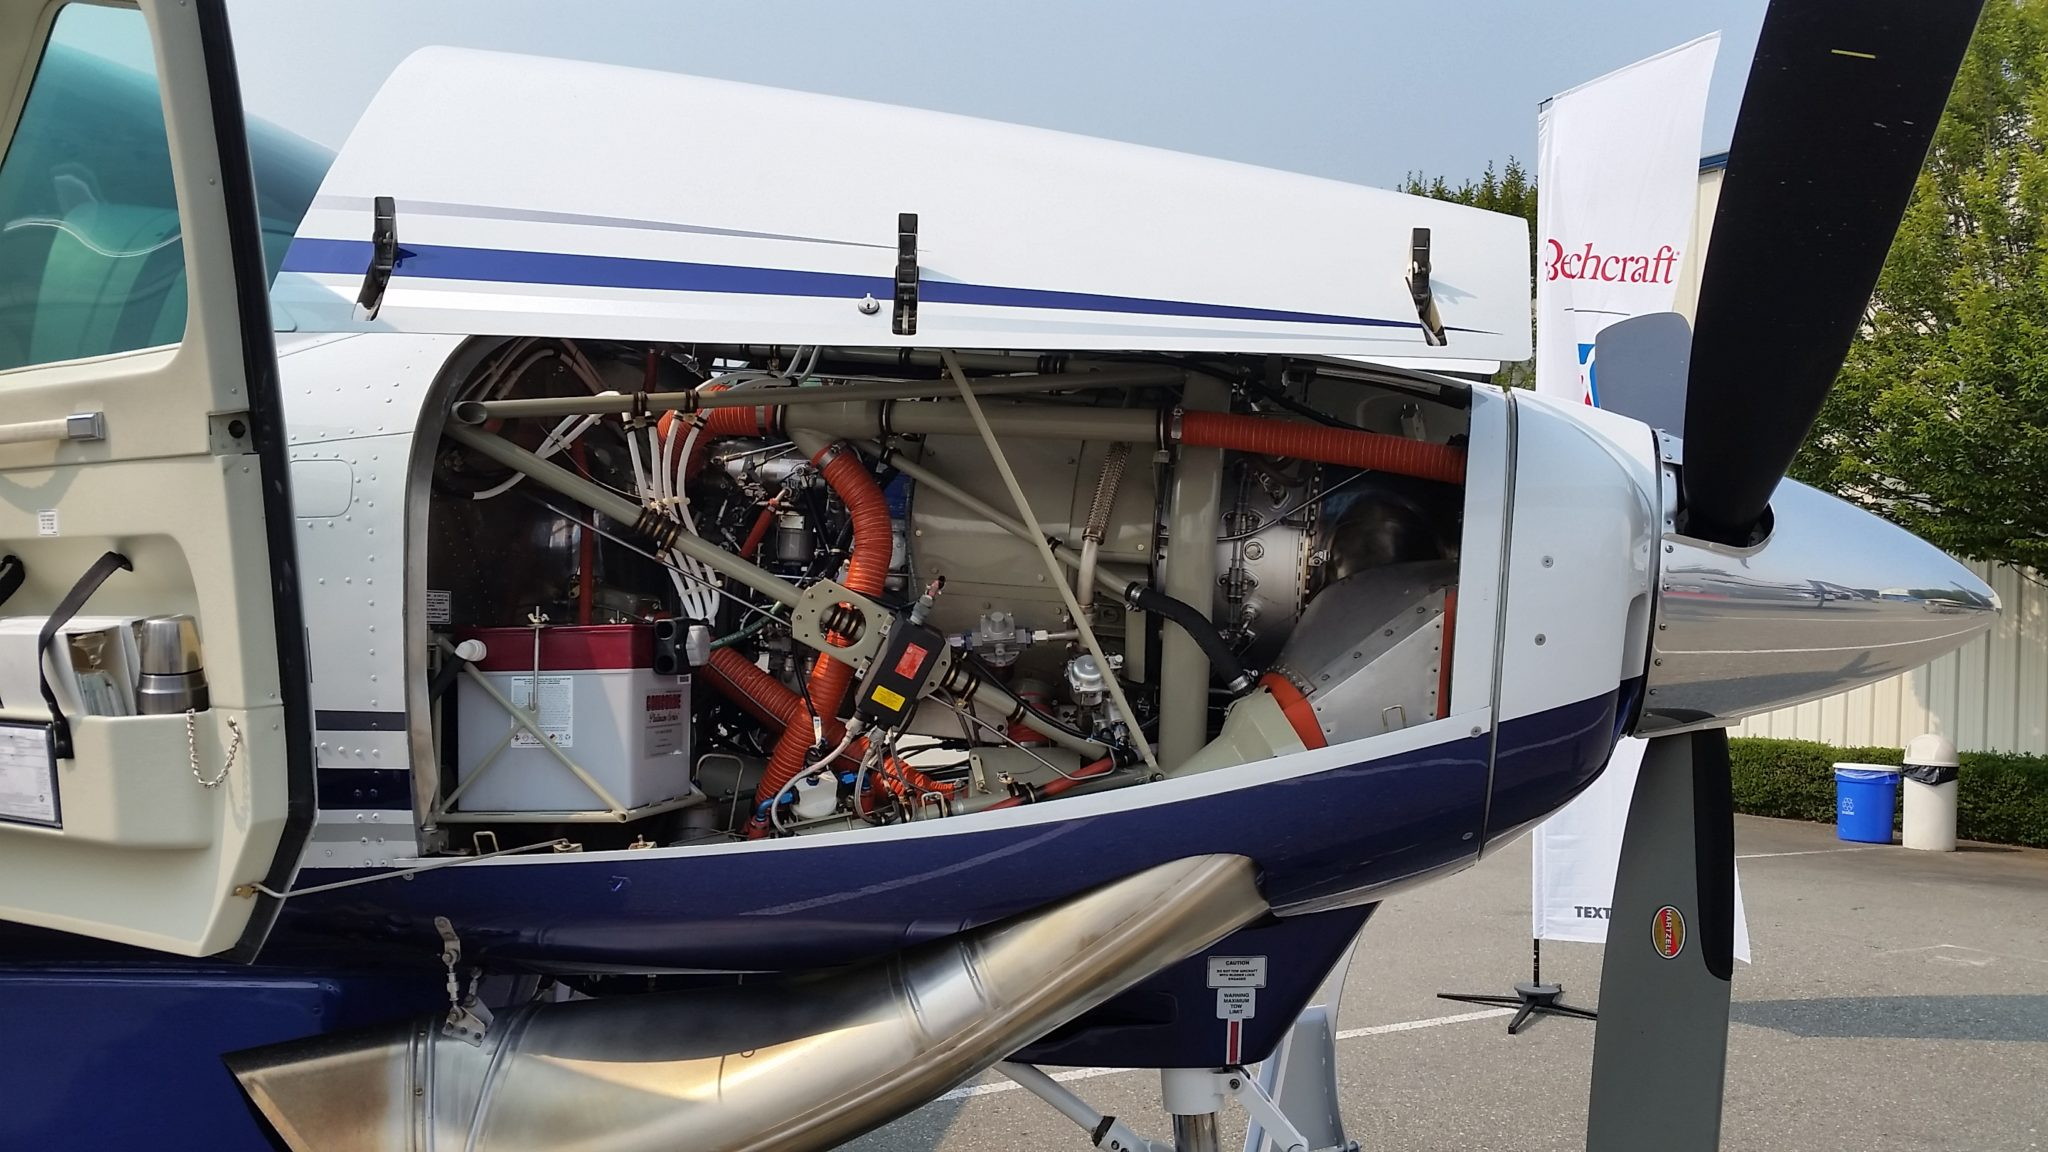 Small airlines face replacement challenges - Leeham News and